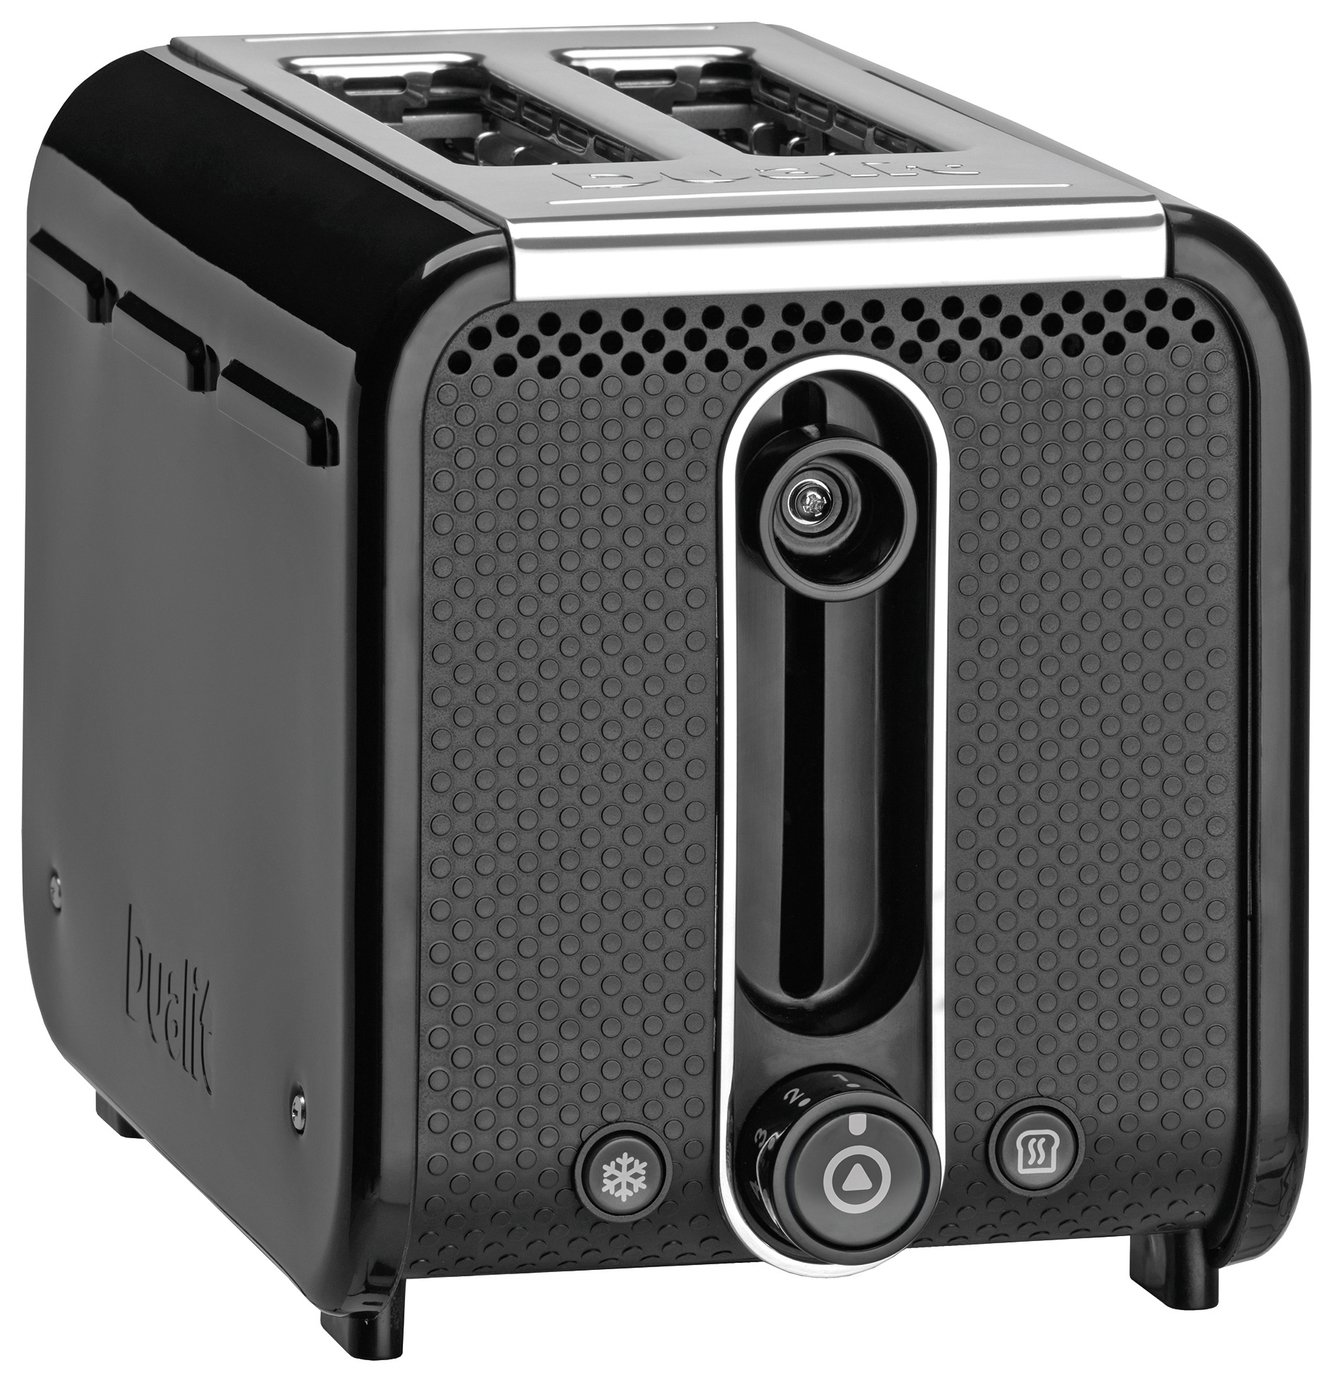 Dualit Studio S 2 Slice Toaster - Black